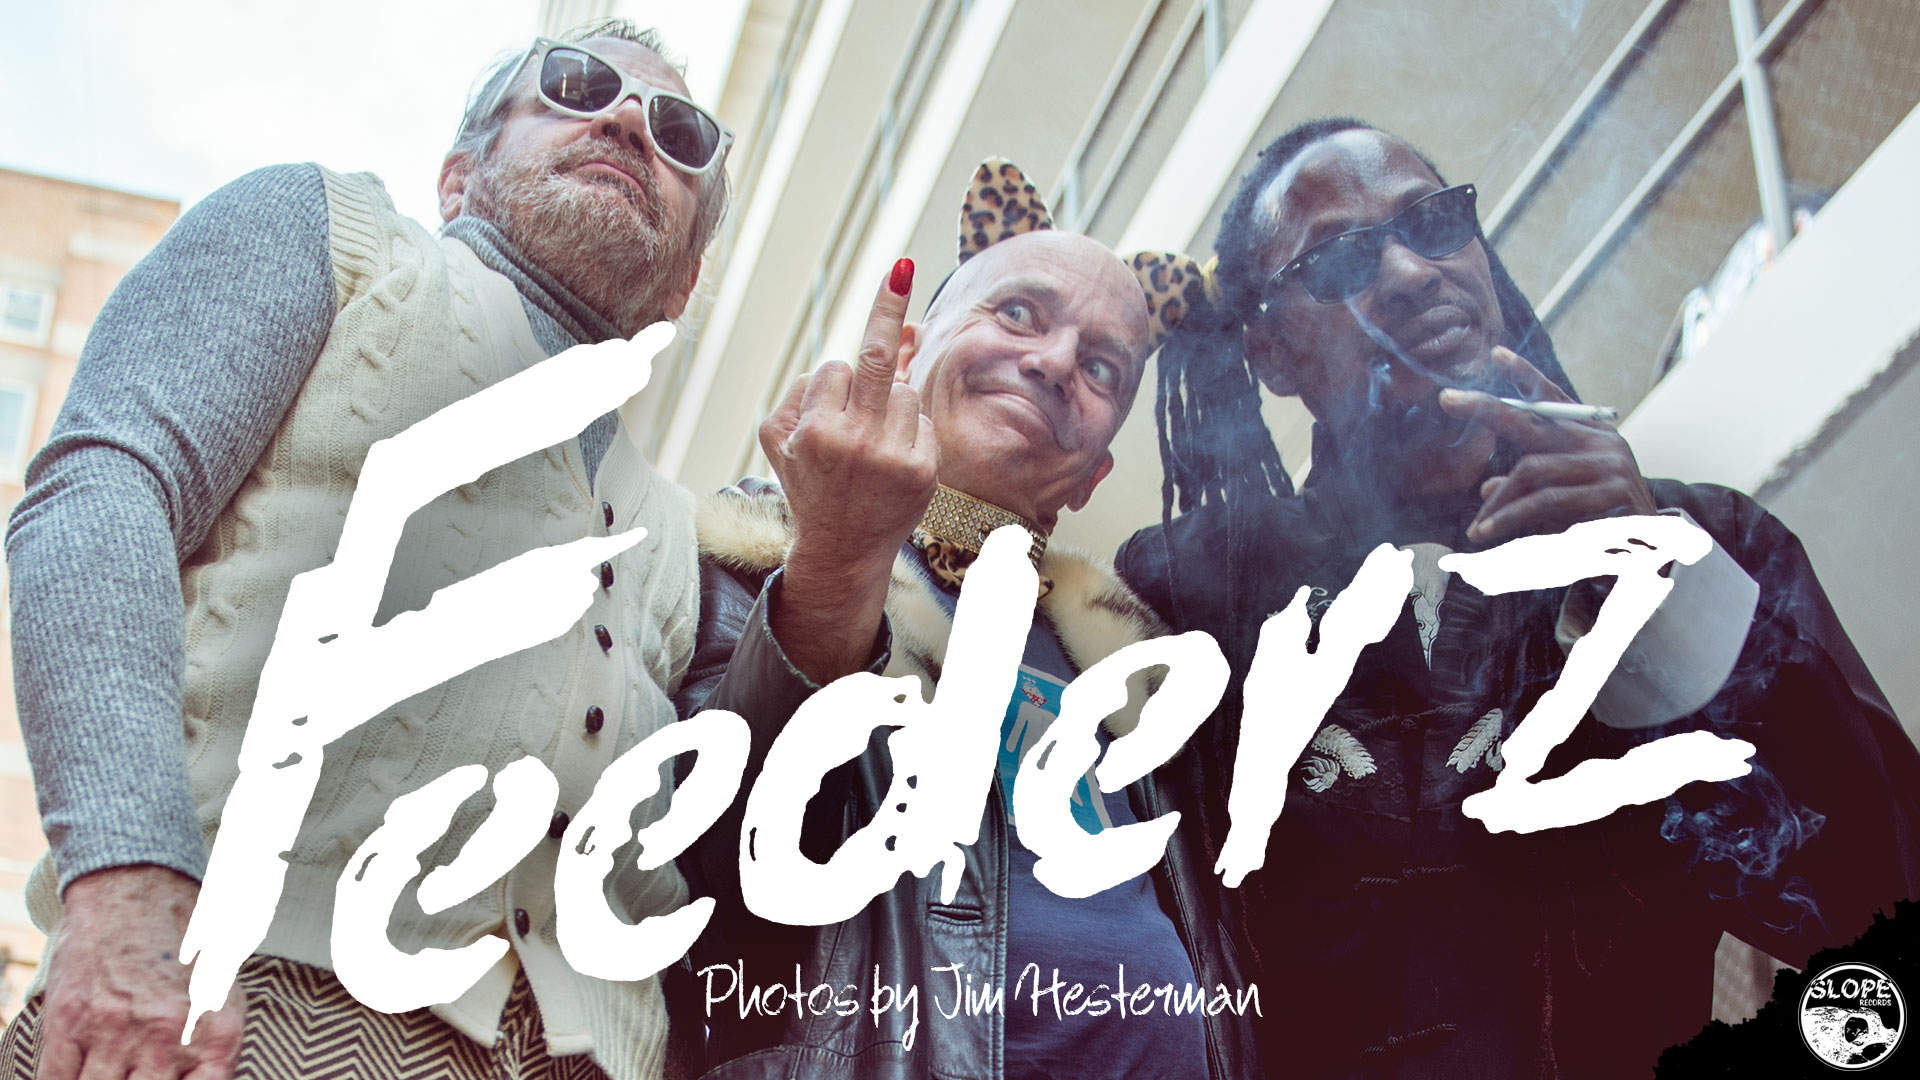 Feederz Are Back - Photos by Jim Hesterman - Slope Records